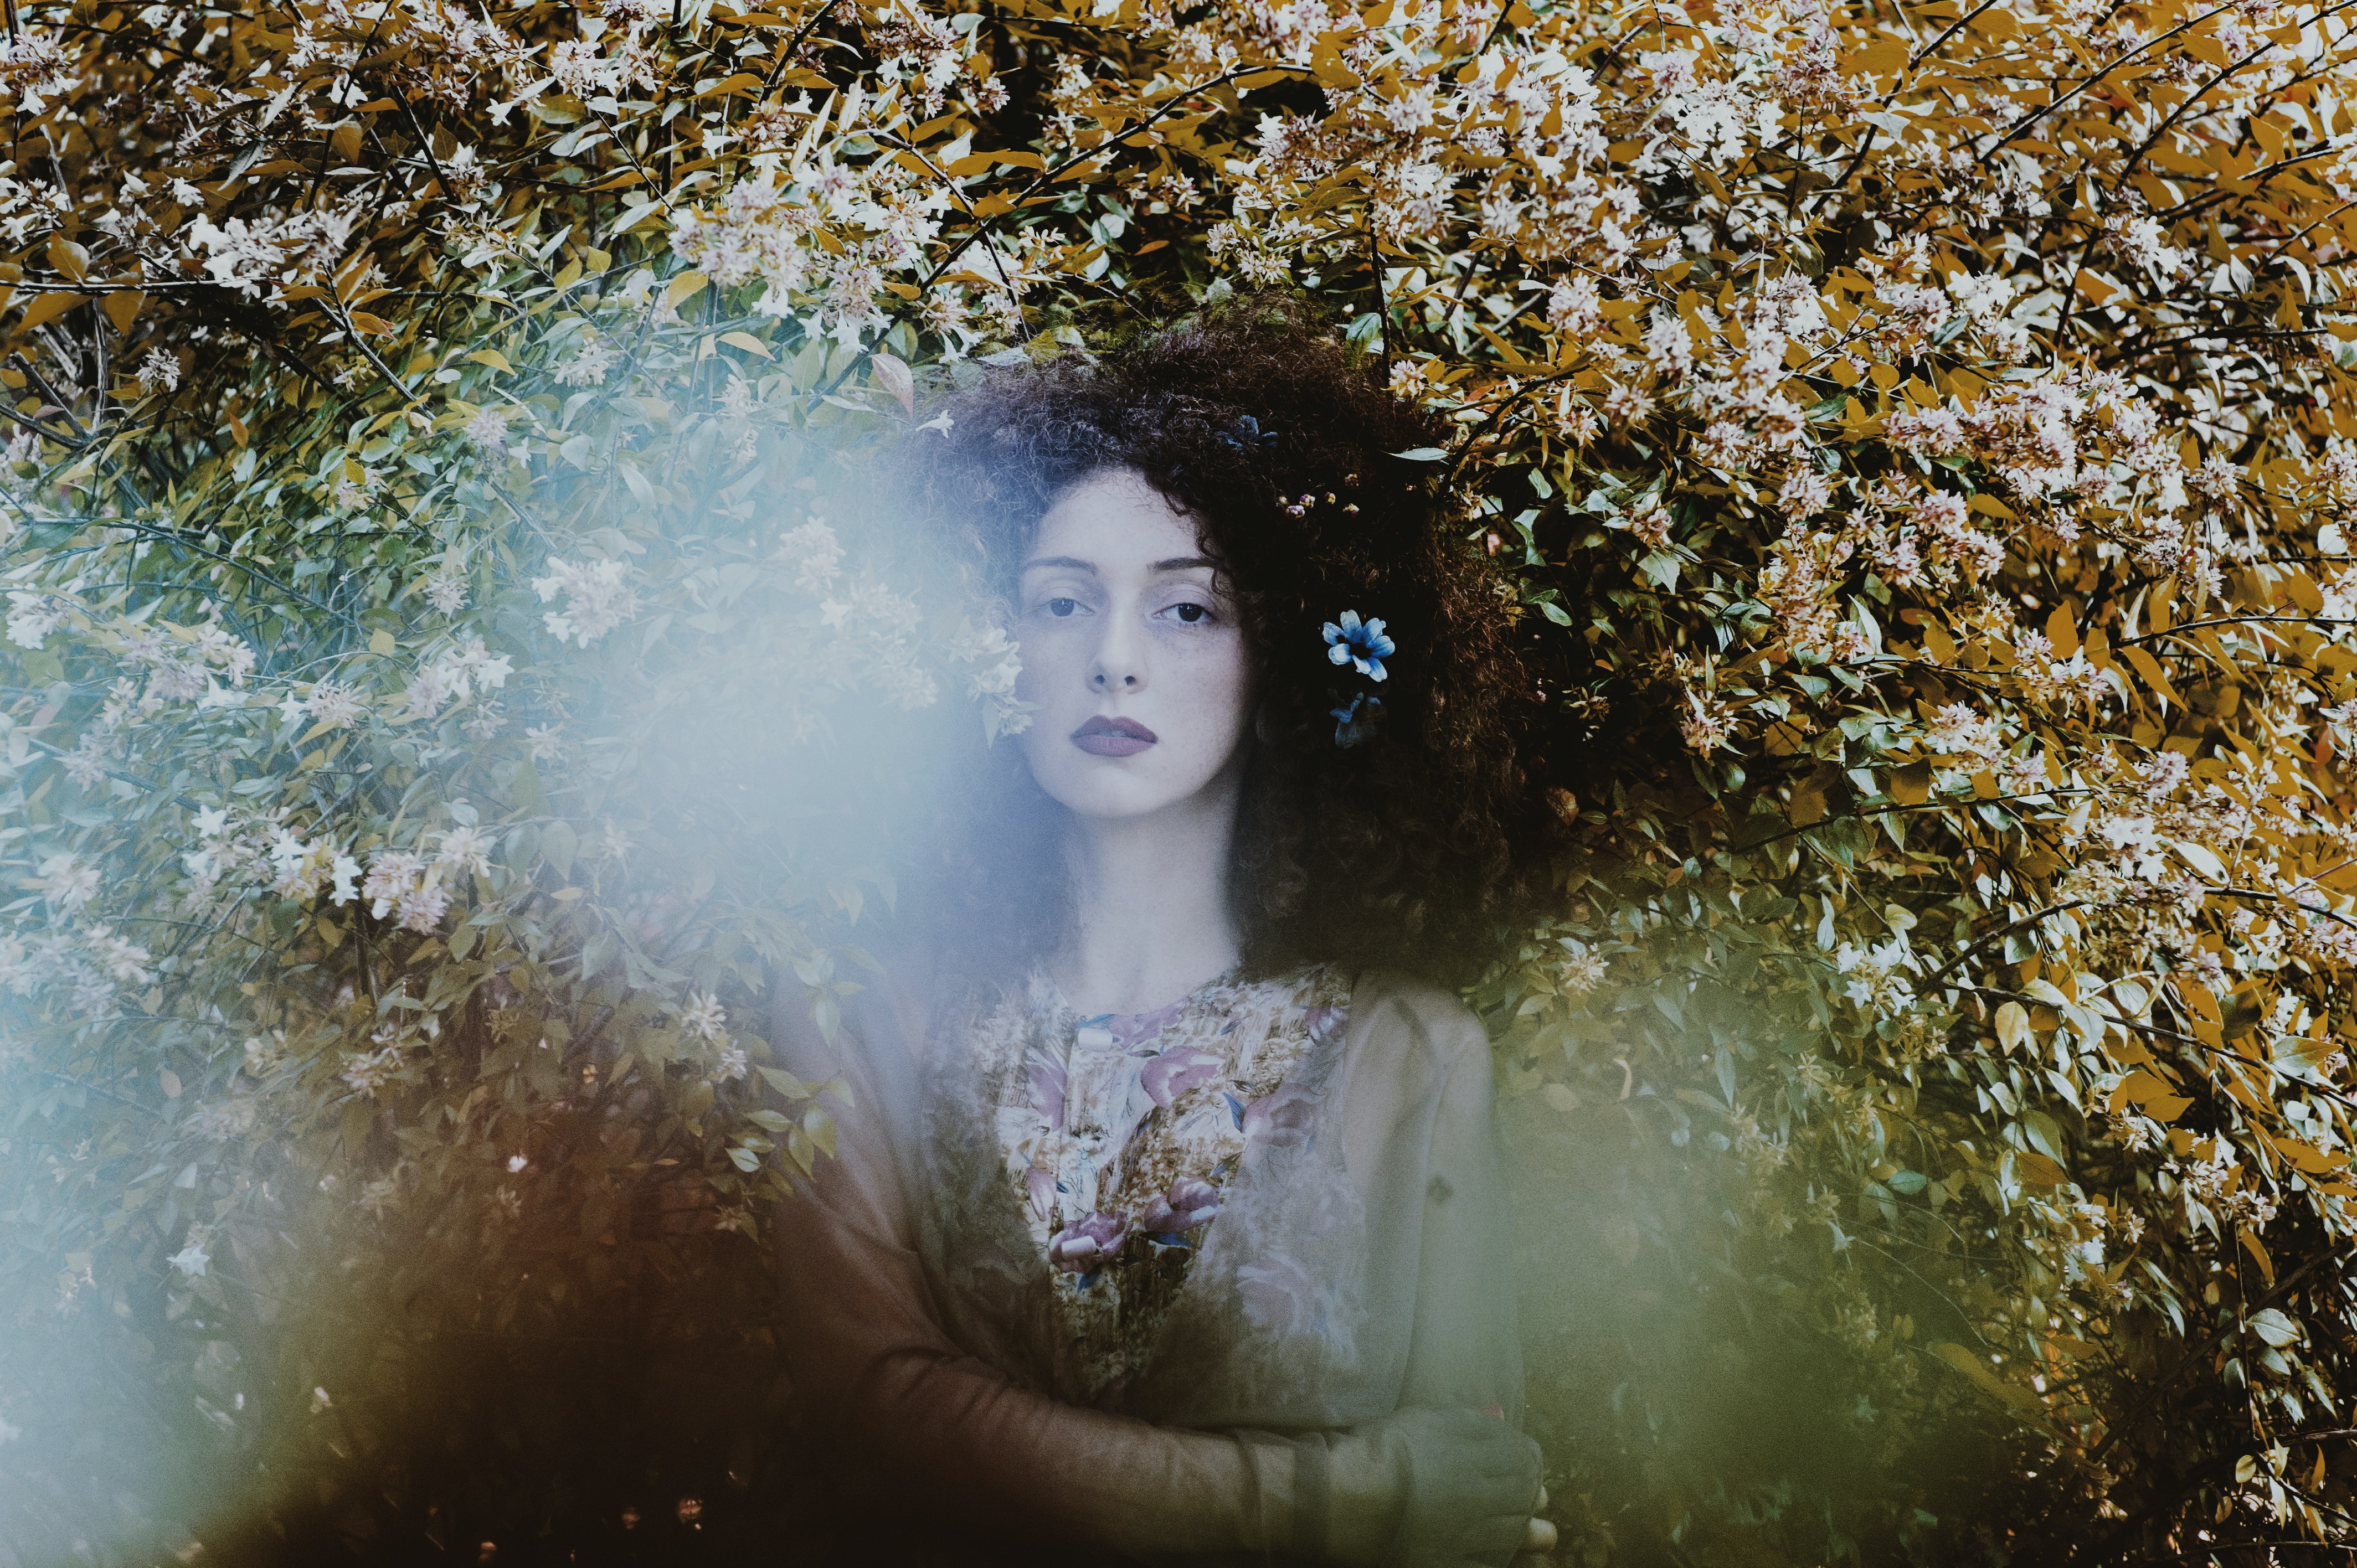 A curly-haired woman with a flower in her hair stands in leafy foliage, looking outward